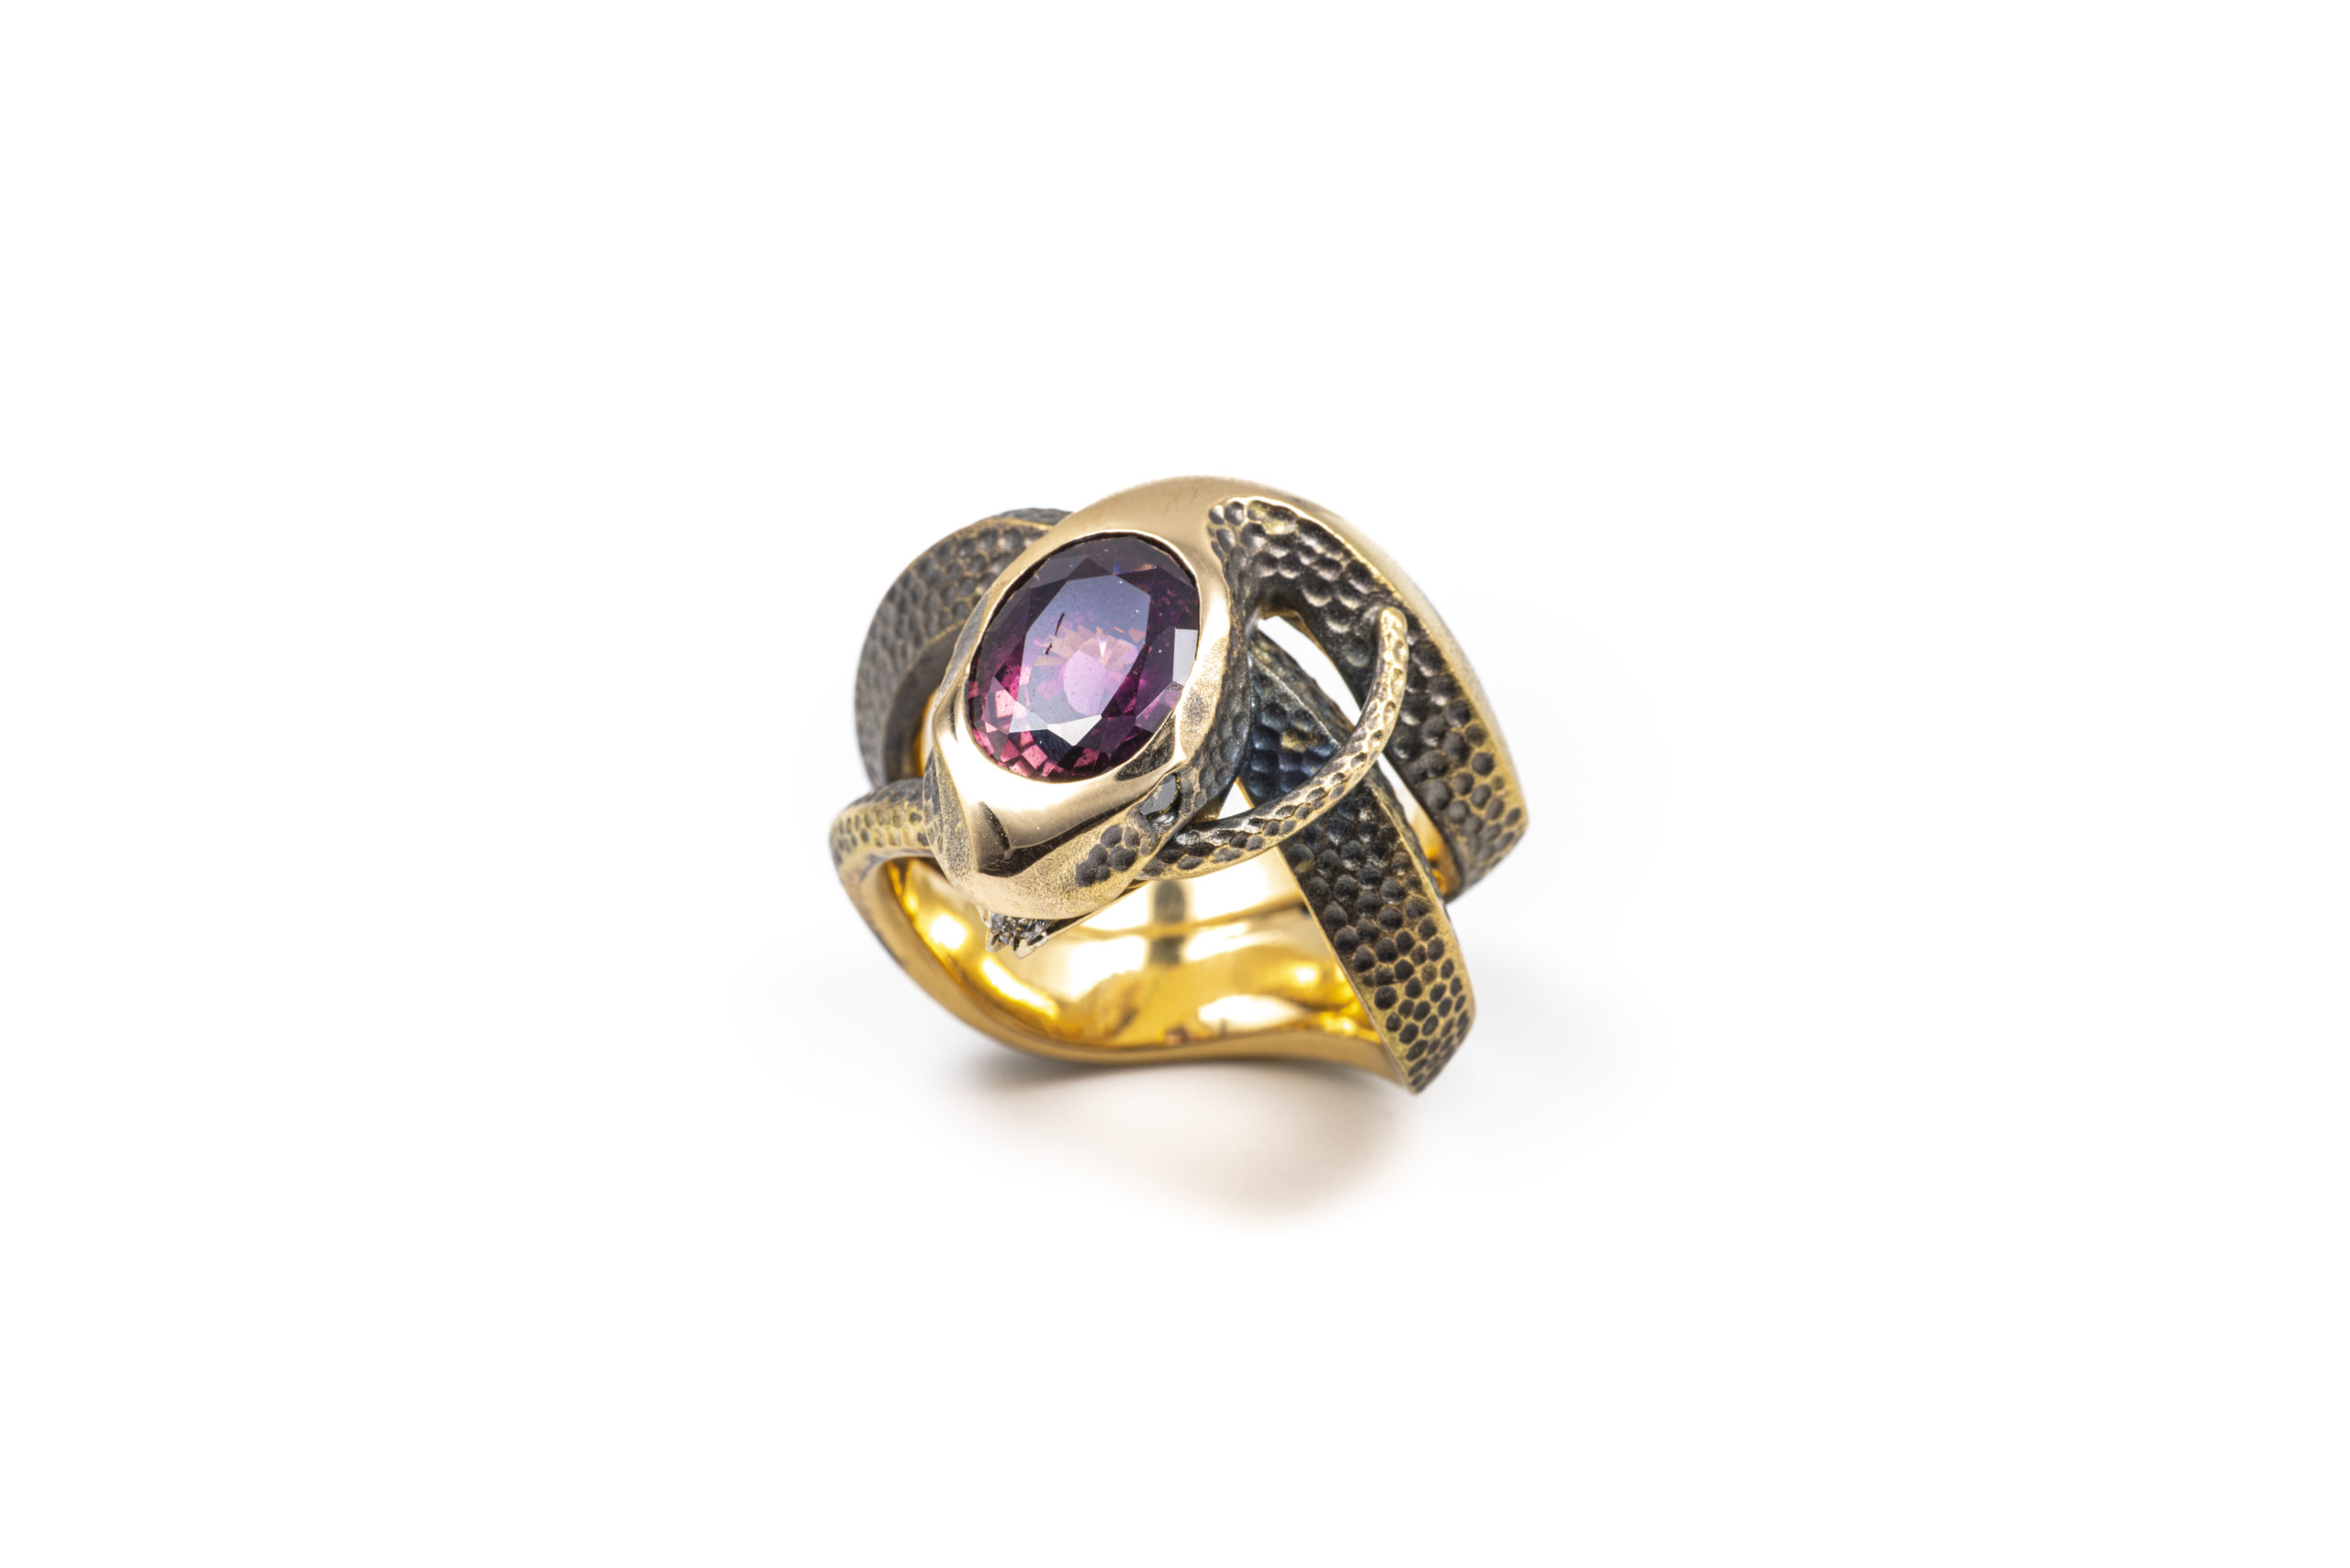 Why do the French have a fascination for gemstones?